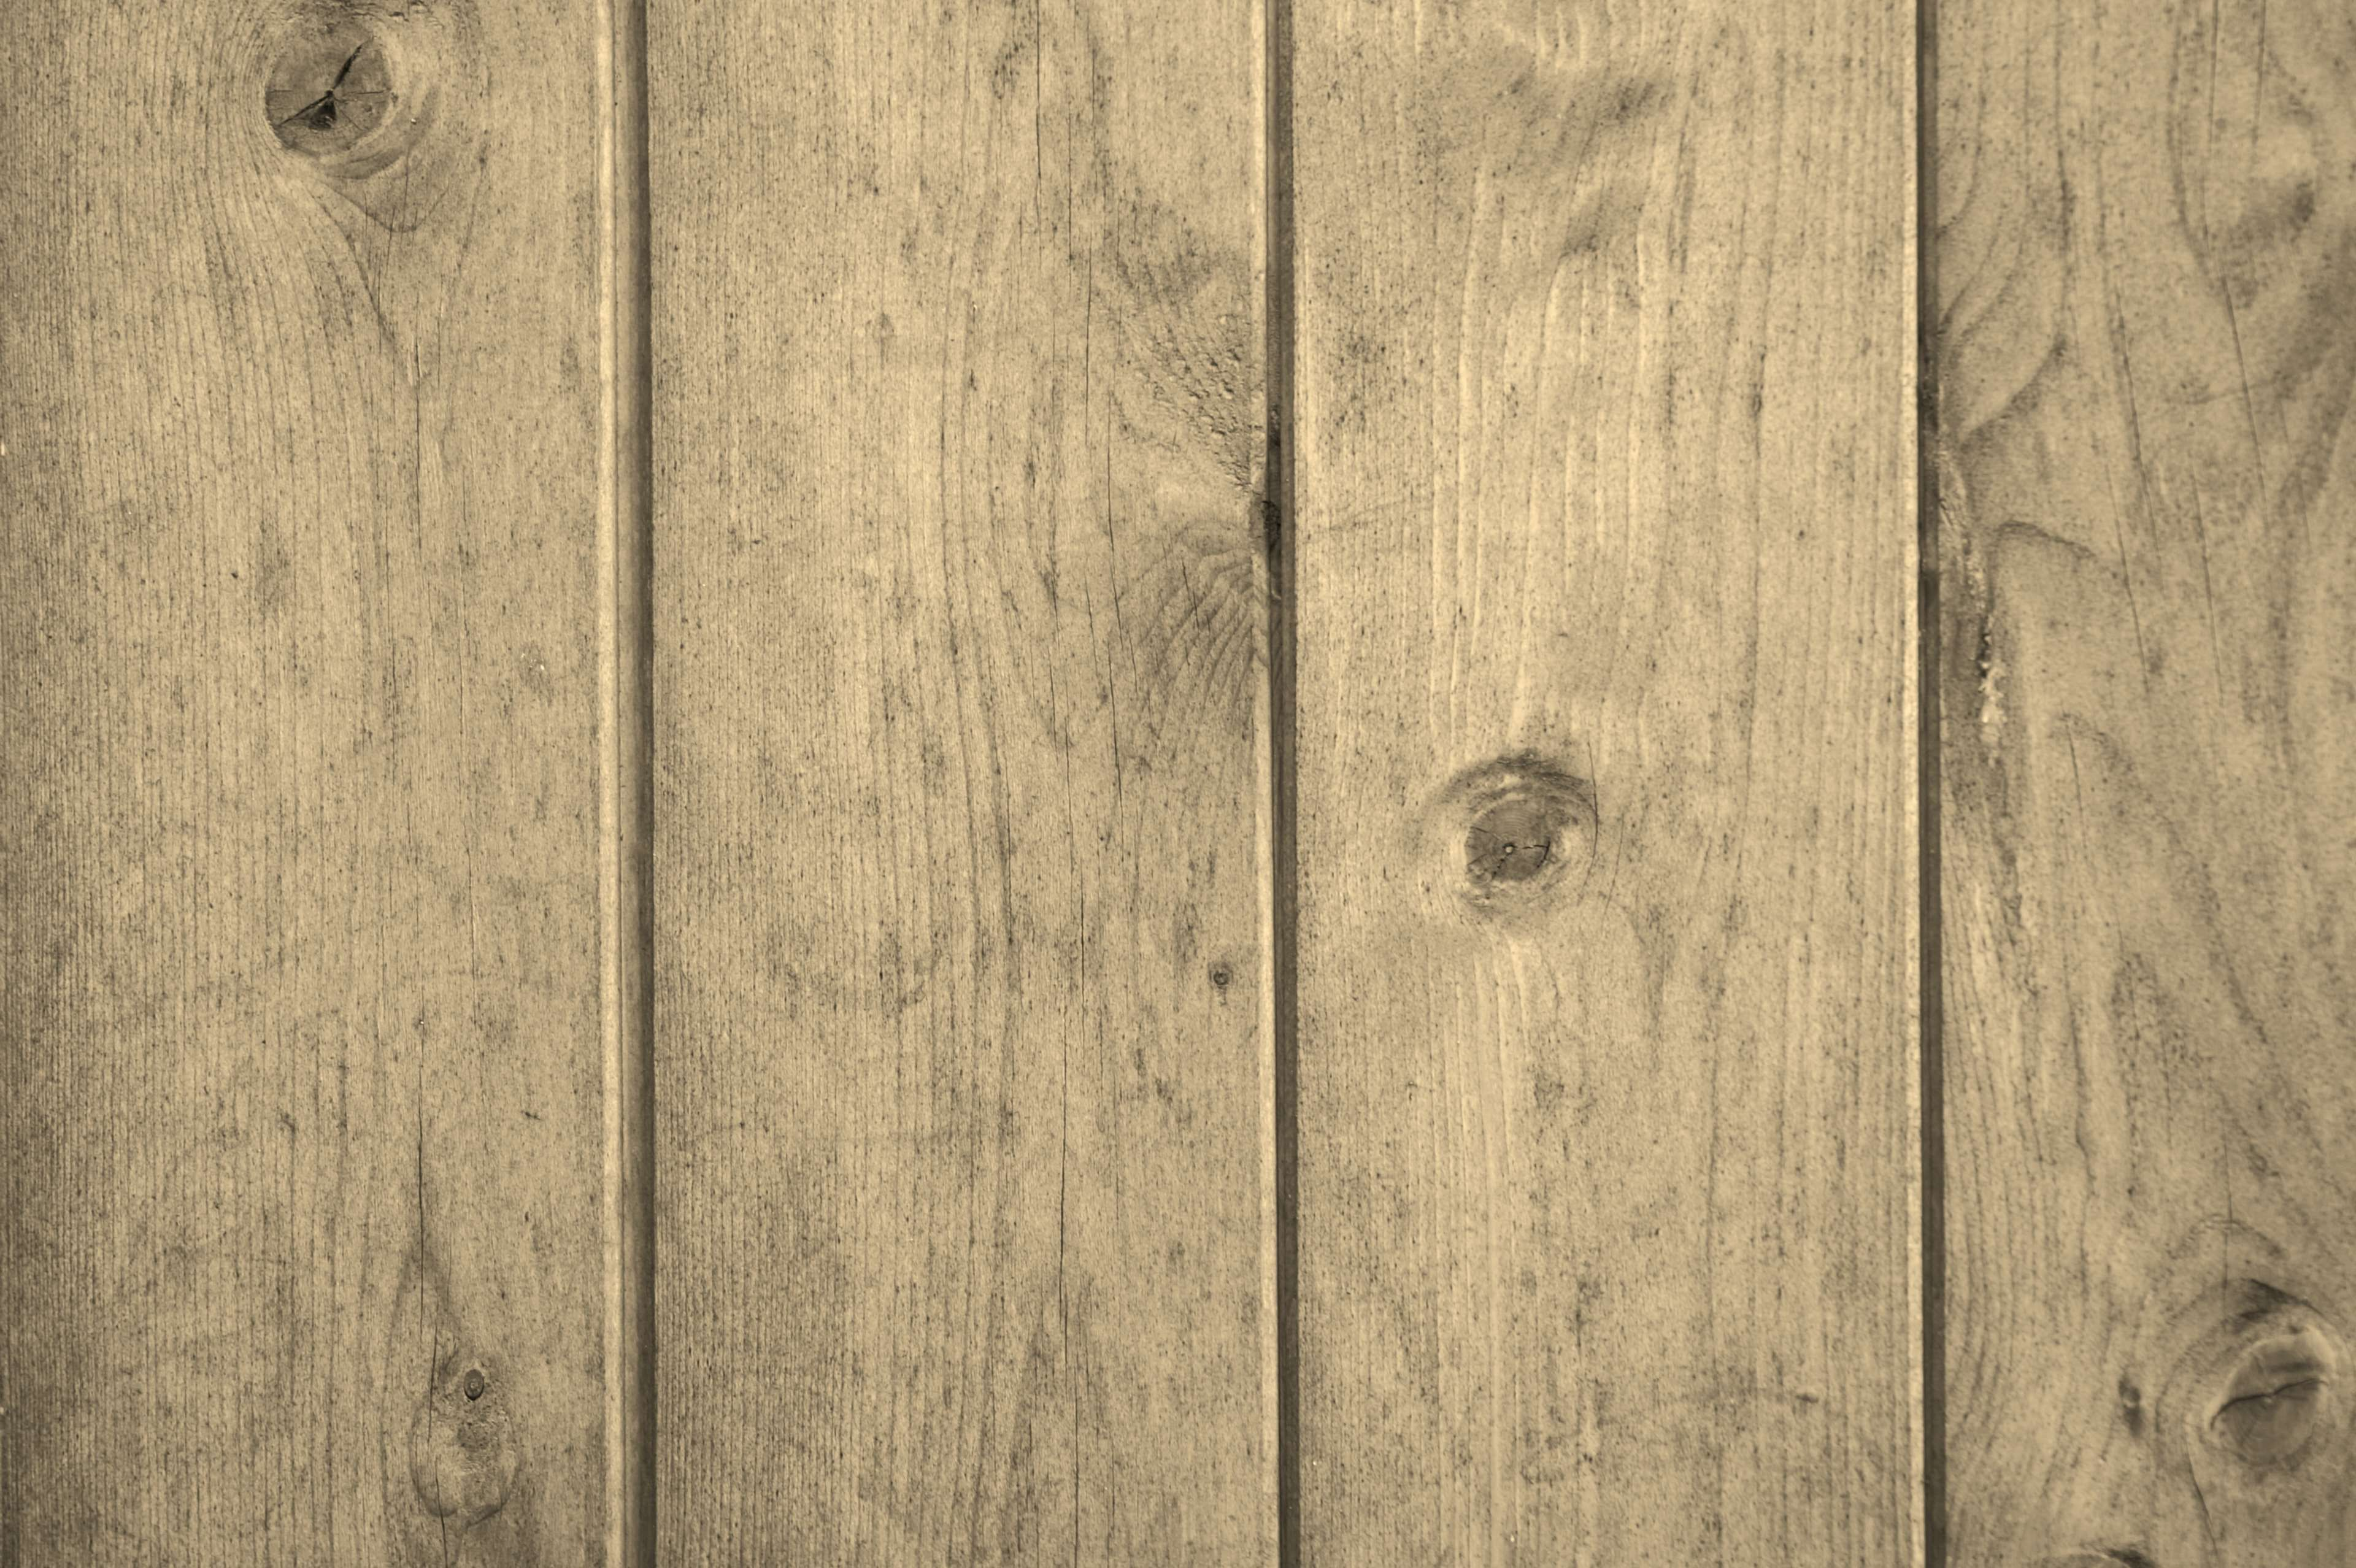 background #boards #fence #grain #old #privacy #structure #surface ...